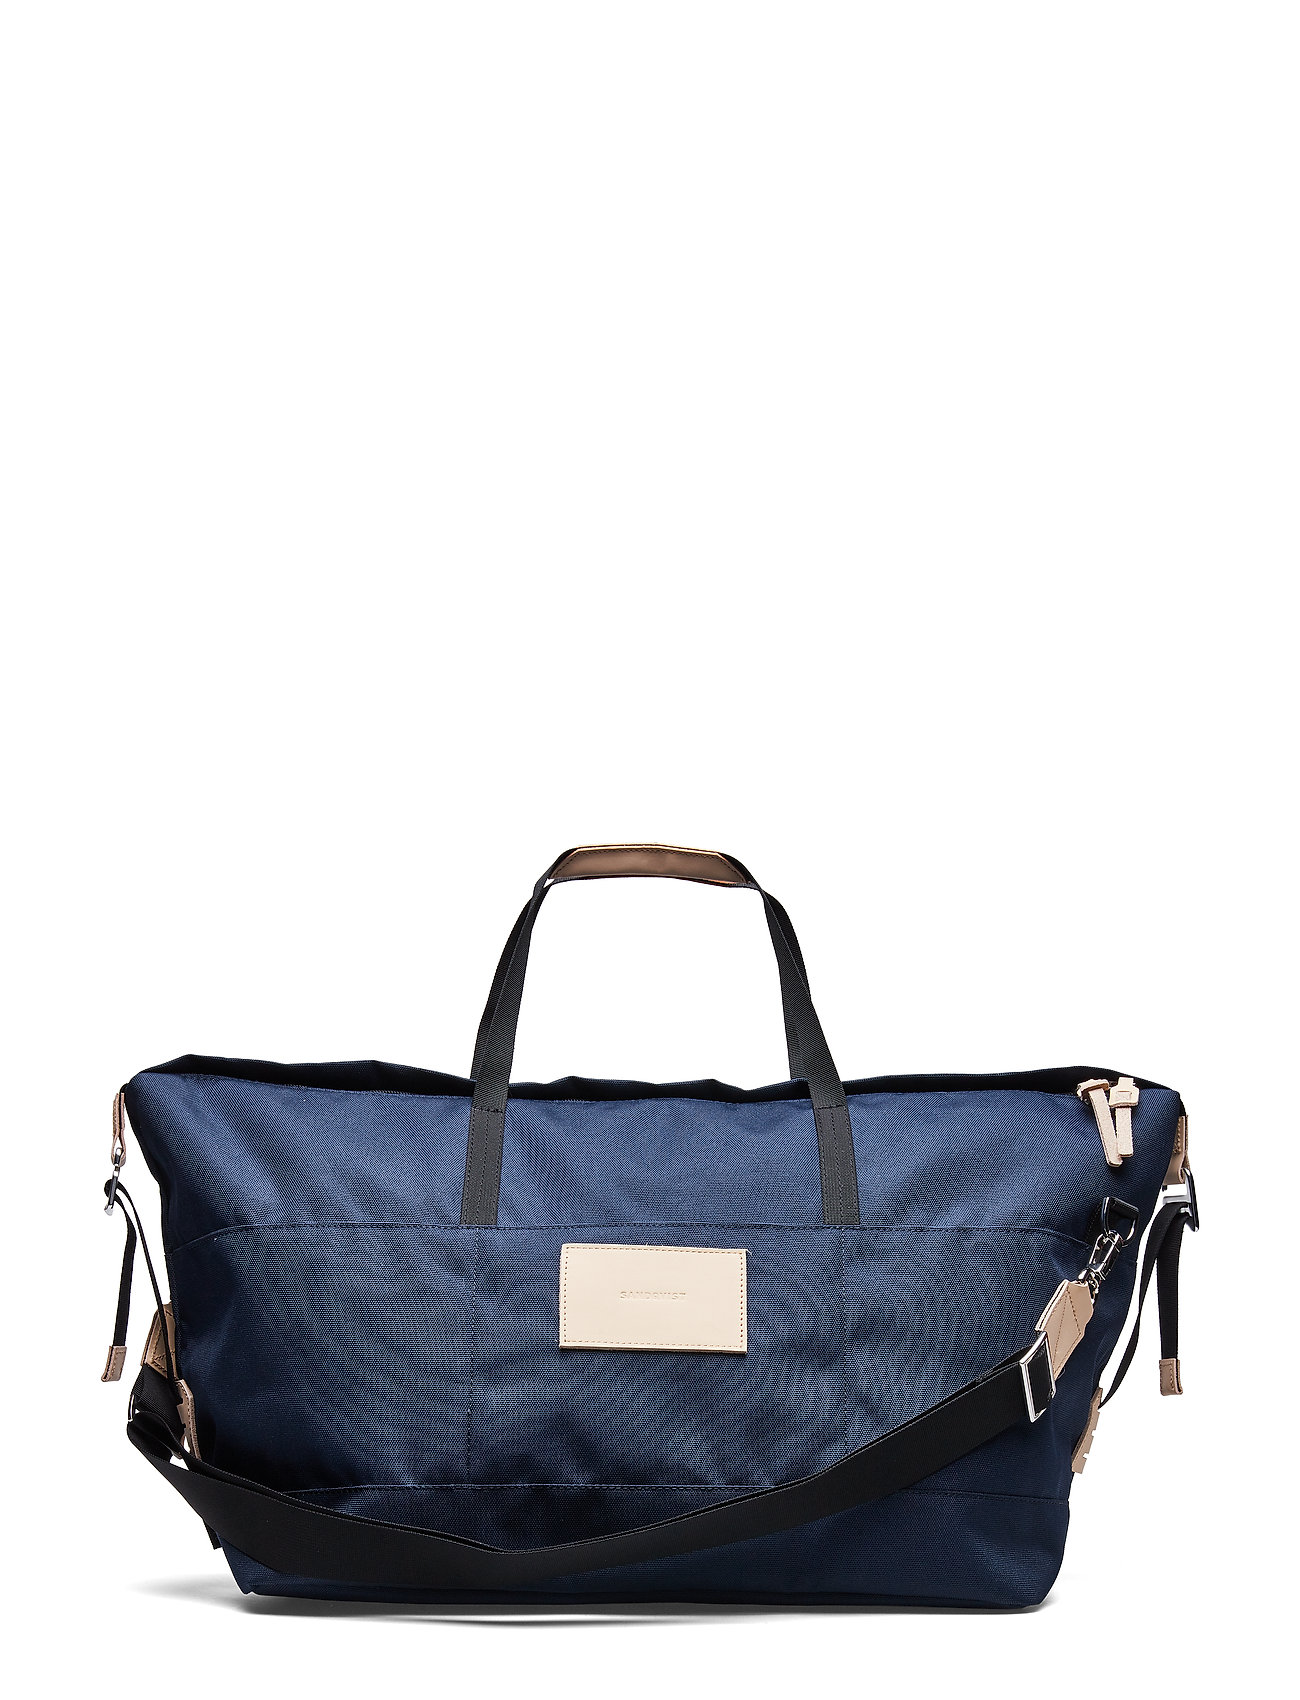 SANDQVIST MILTON - NAVY WITH NATURAL LEATHER